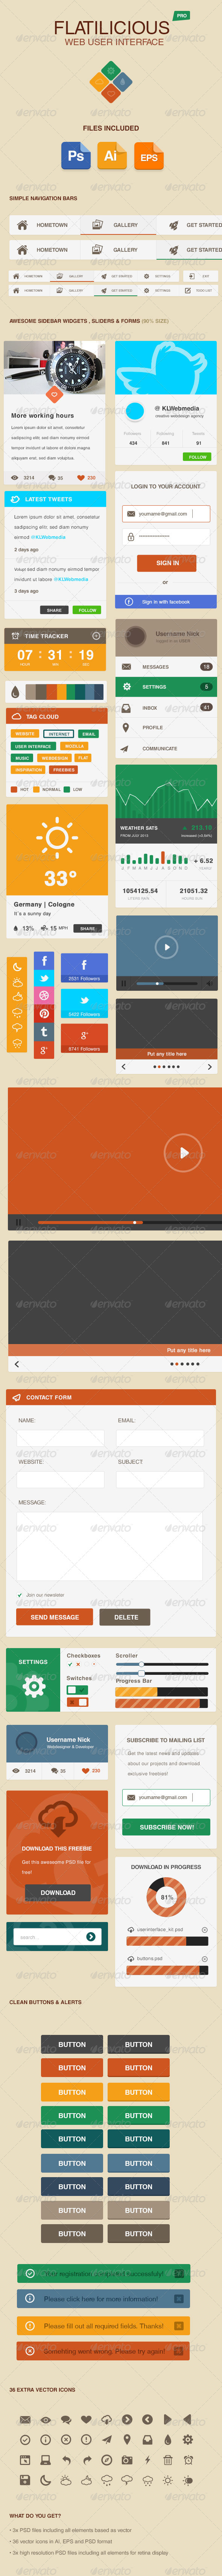 GraphicRiver Flatilicious User Interface 5288035